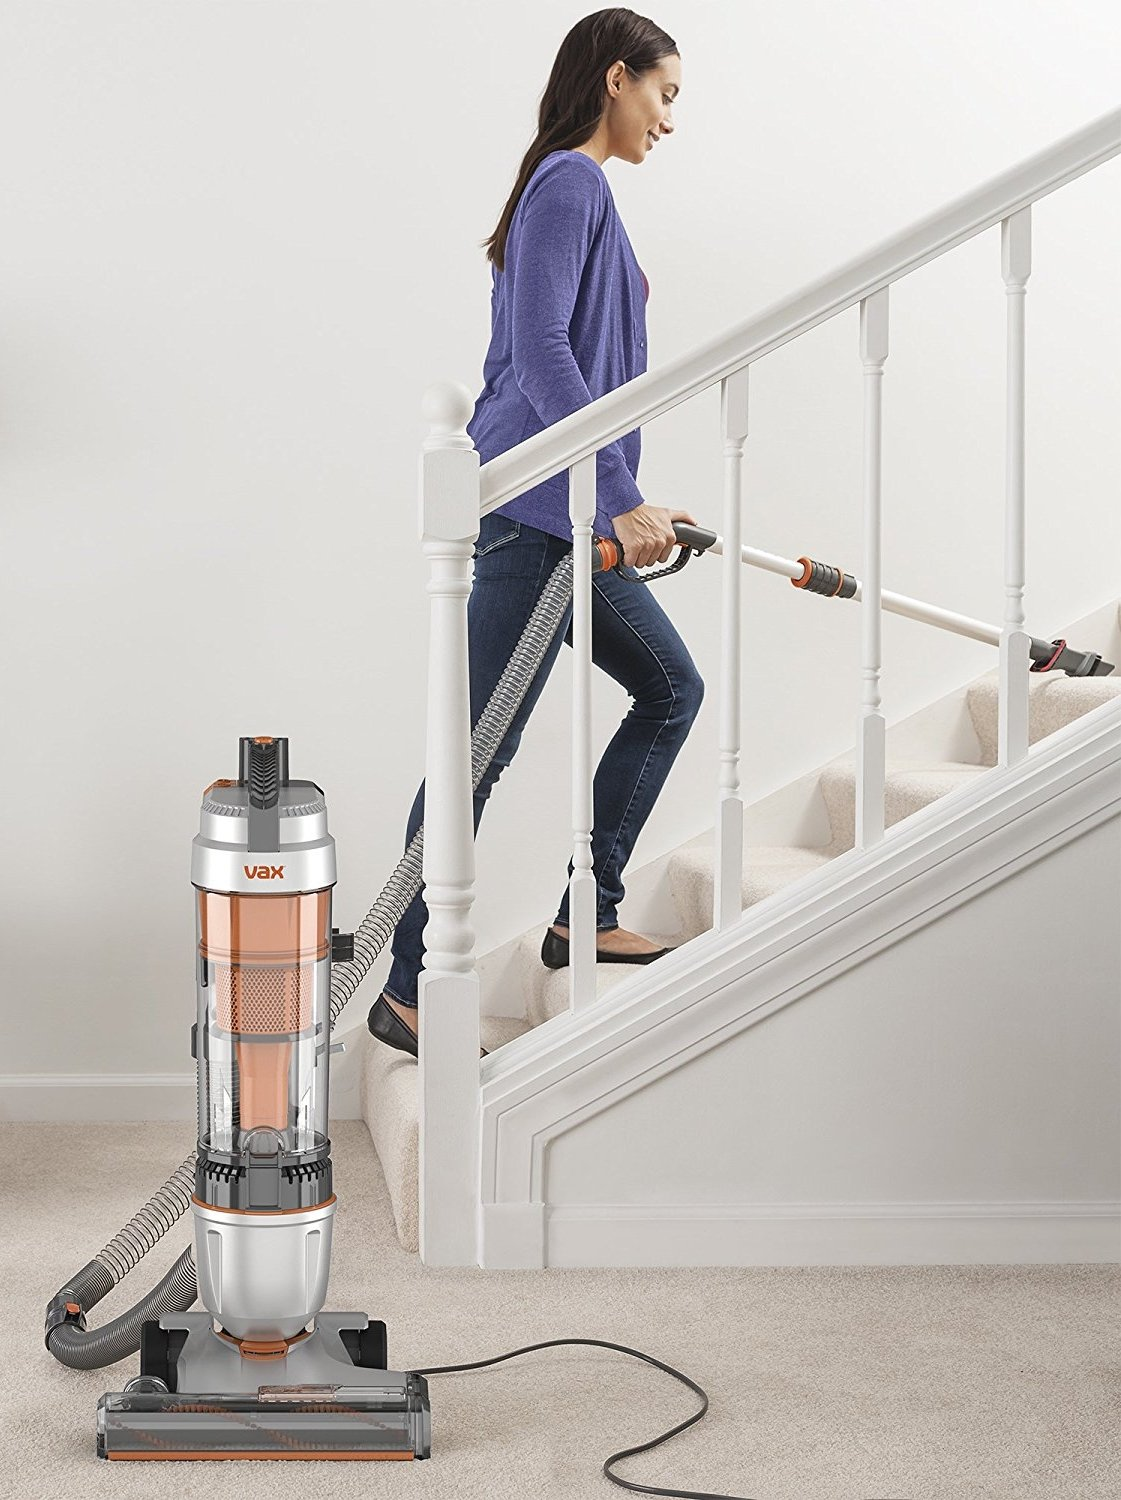 Best Vacuum For Stairs 2019 Uk Carpet Amp Hardwood Floor Models